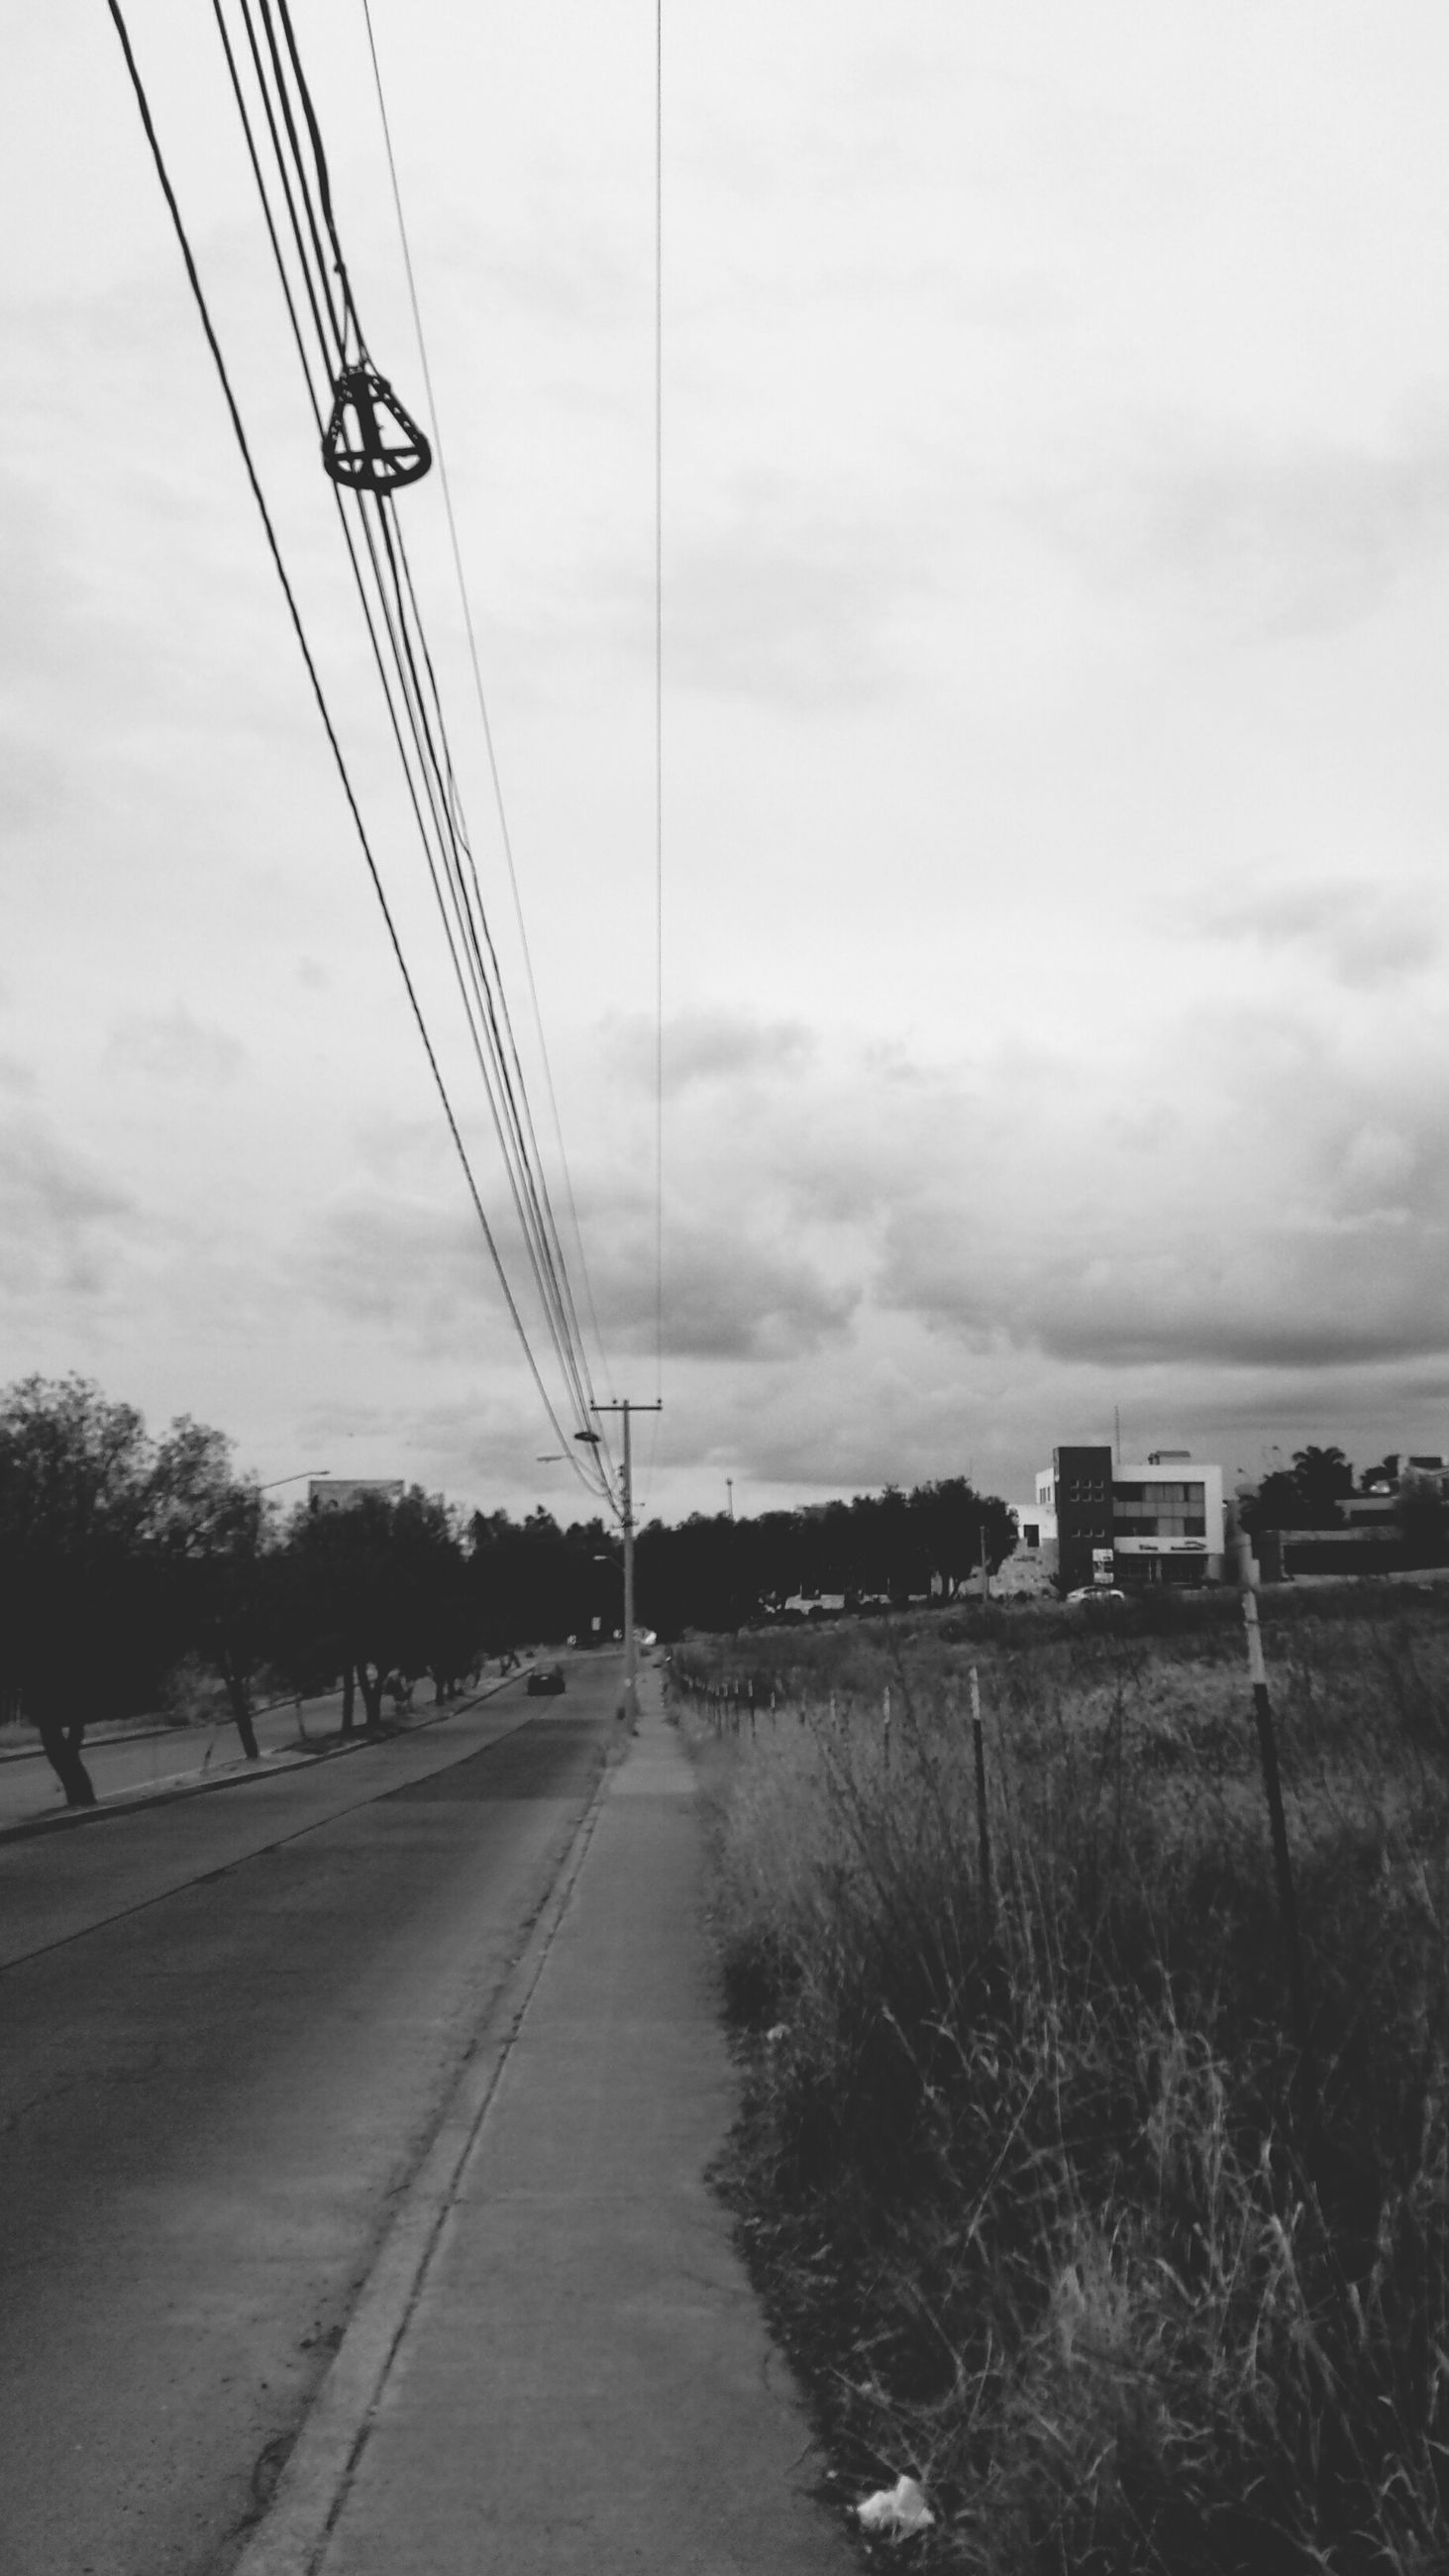 power line, electricity pylon, electricity, cable, power supply, transportation, connection, sky, the way forward, fuel and power generation, power cable, diminishing perspective, technology, cloud - sky, tree, railroad track, road, vanishing point, day, rail transportation